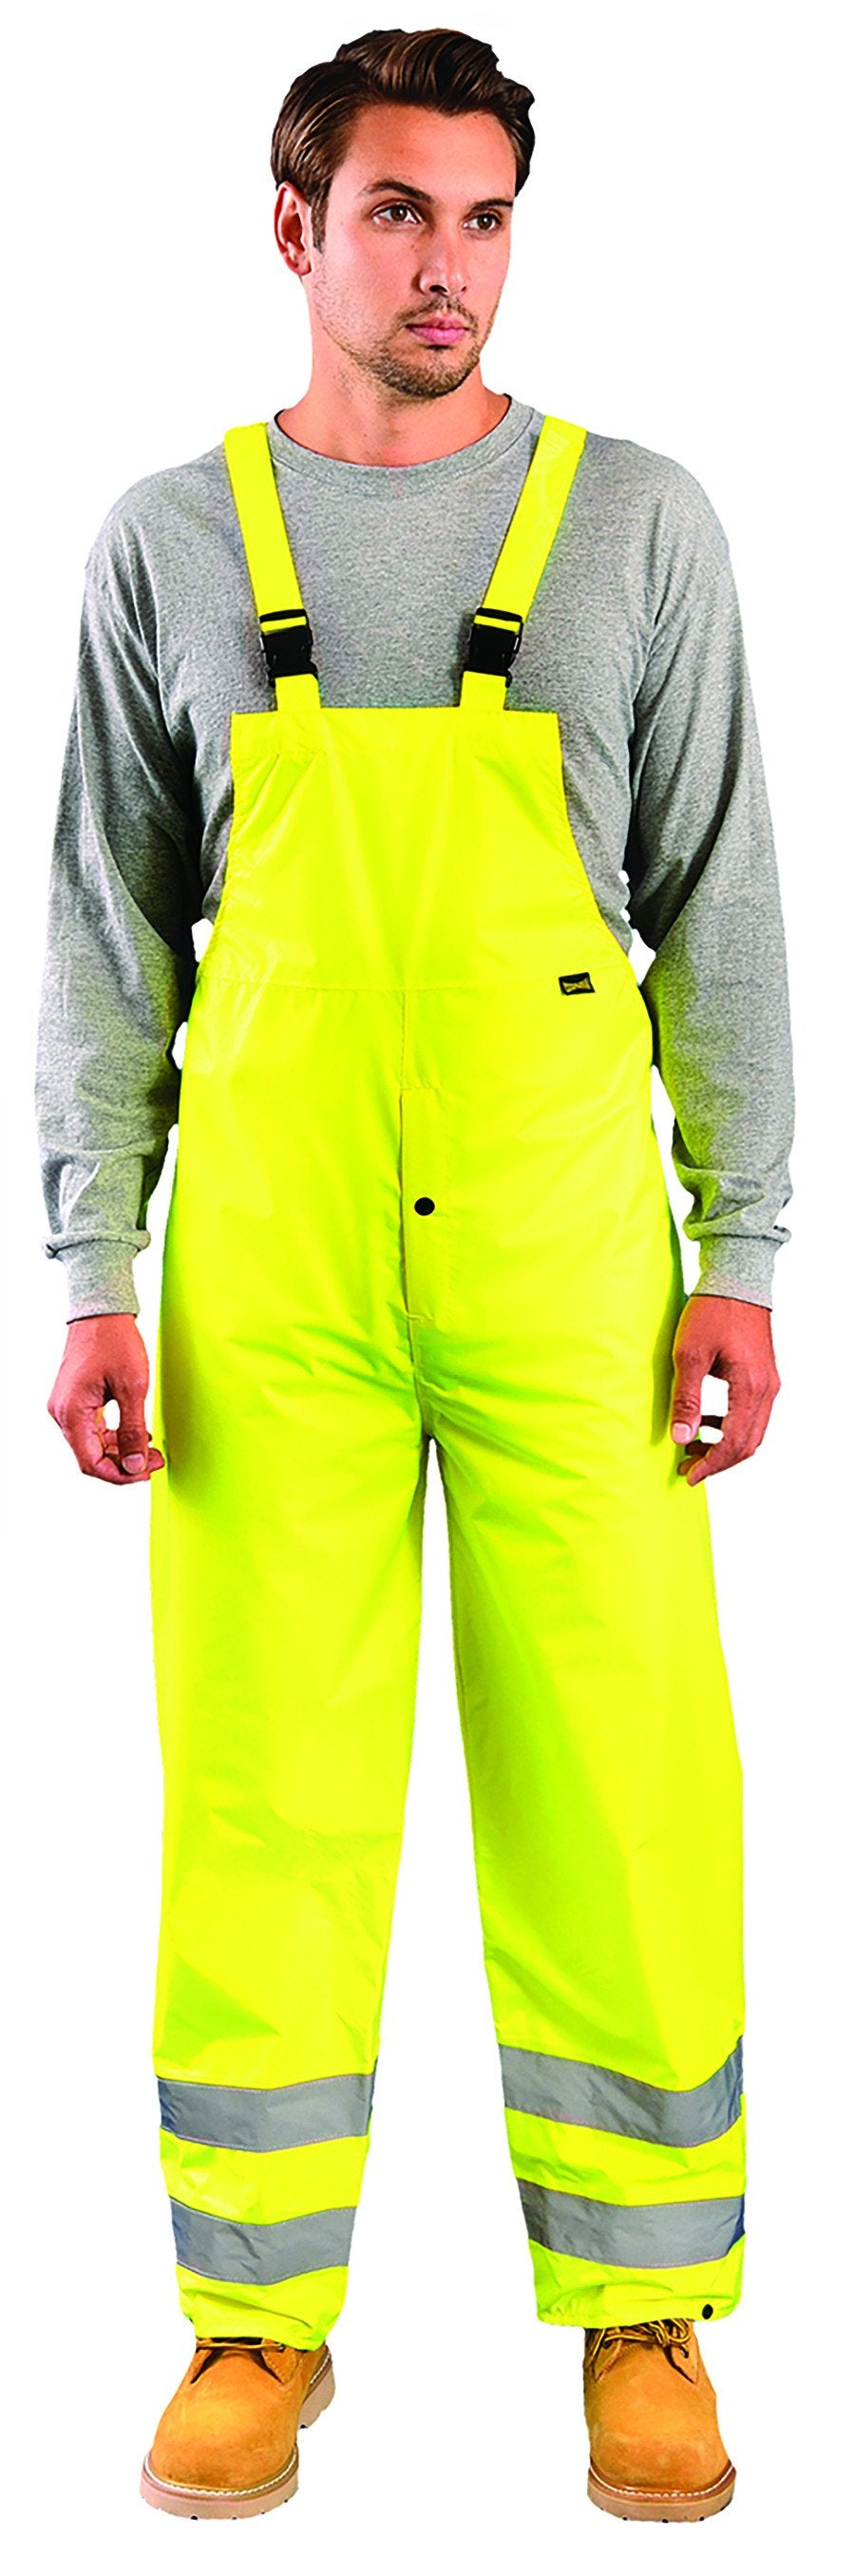 Premium Breathable Jacket - 3XL / Fluorescent Orange